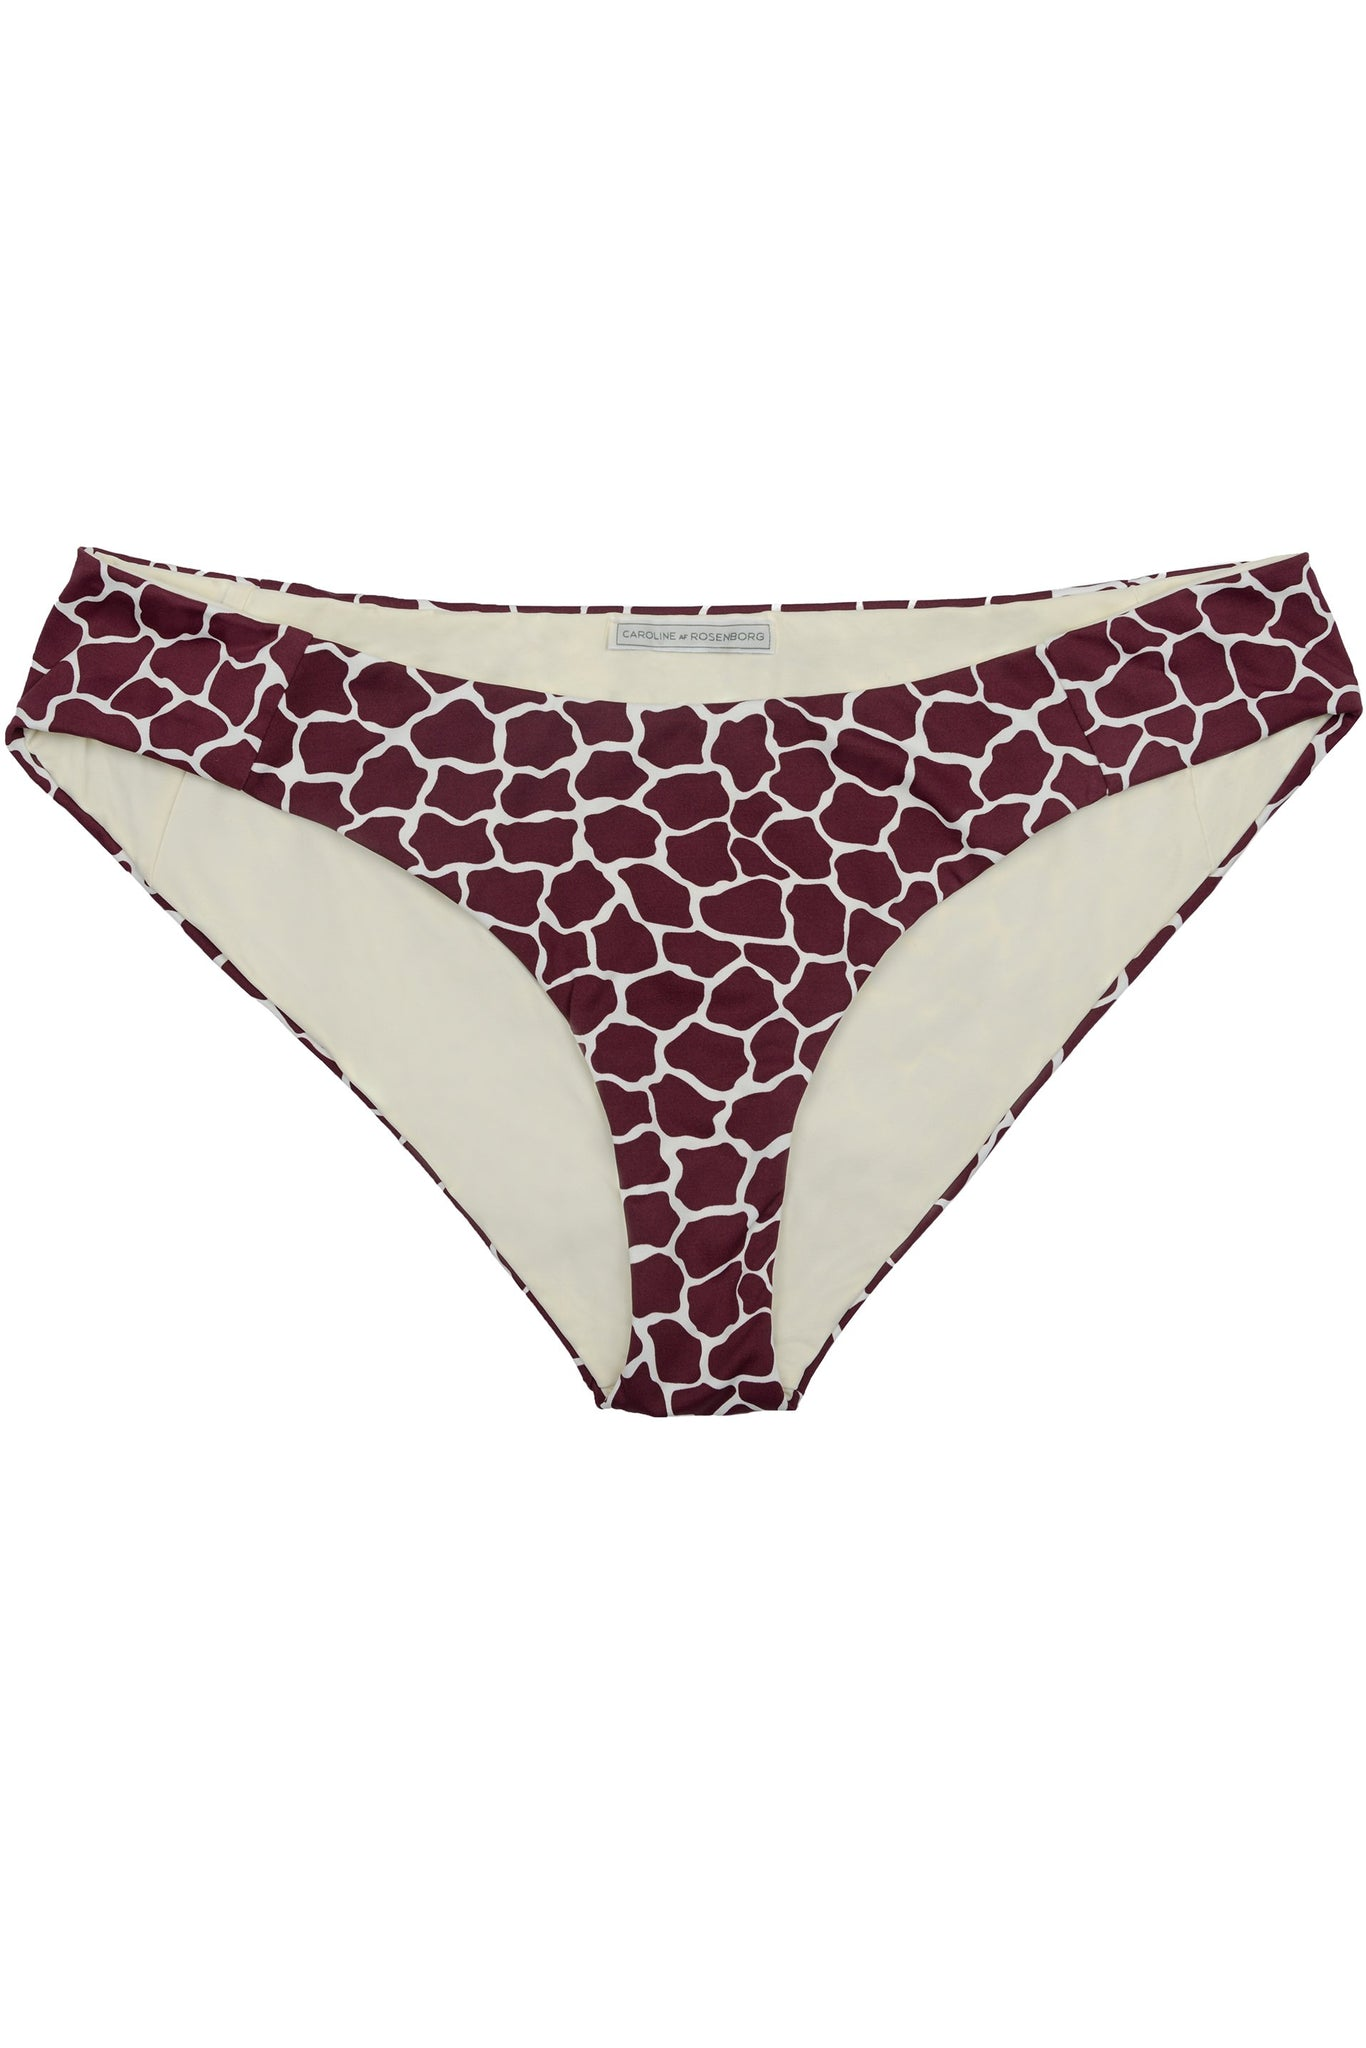 Classic covering bikini bottom in dark red burgundy giraffe animal print by Caroline af Rosenborg